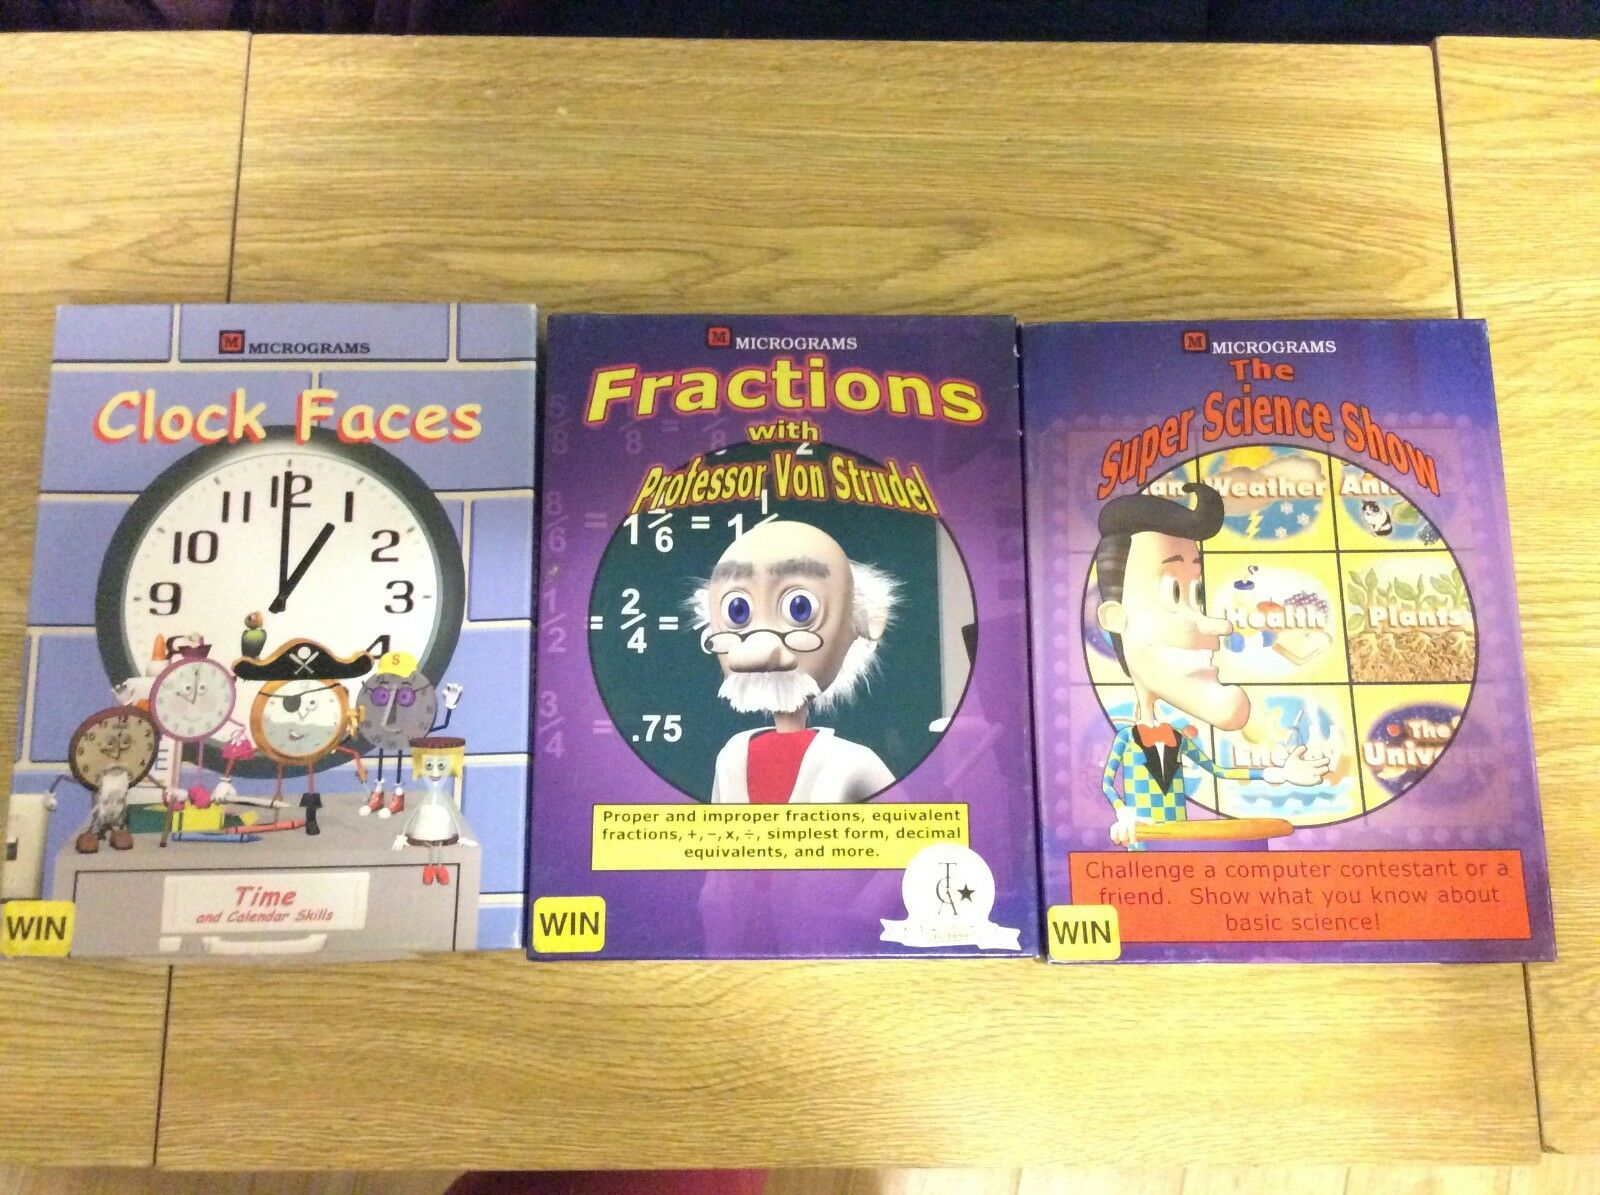 Micrograms Educational Disc Lot Science Show Fractions Clock Faces School Games